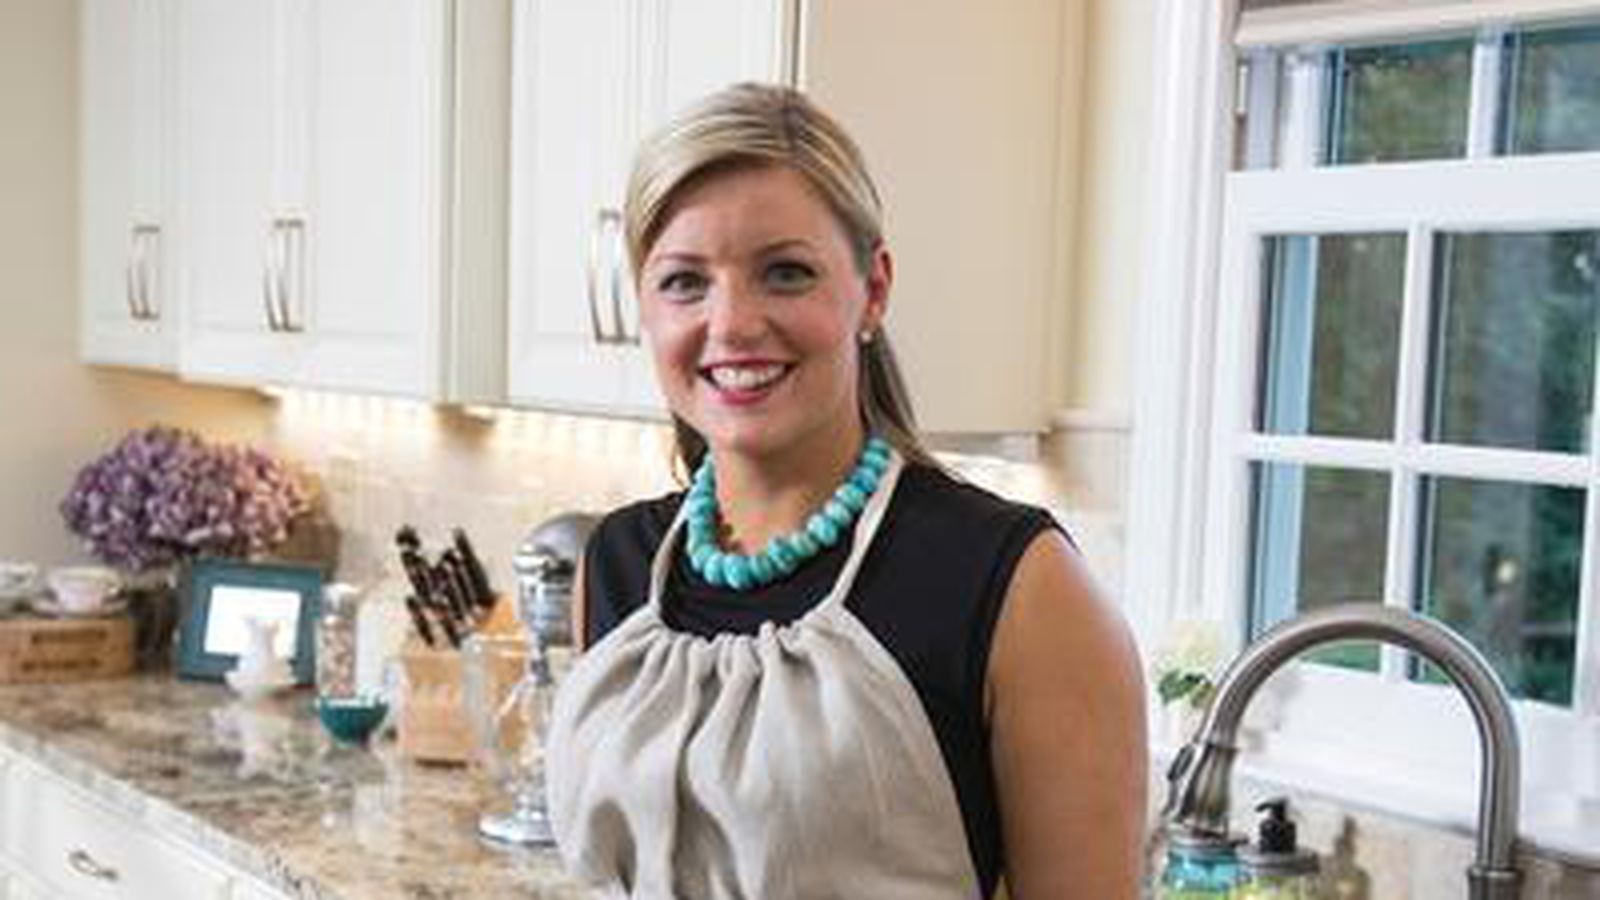 Damaris Phillips 39 S Show Southern At Heart Debuts Eater Louisville